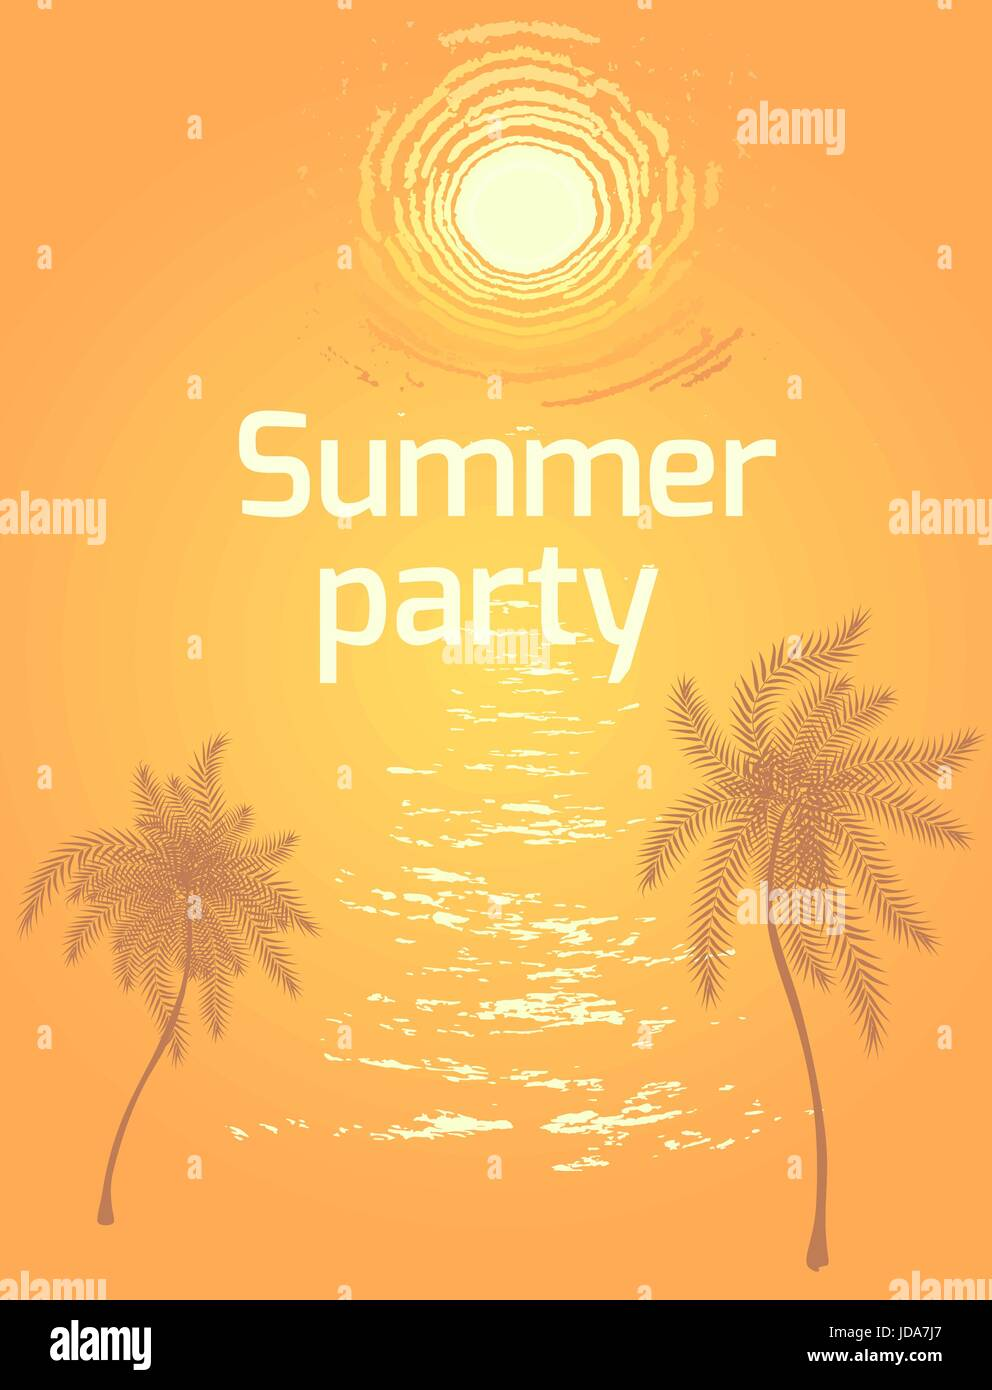 Summer Beach Party Flyer Vector Background With Sunset Over Sea Waves